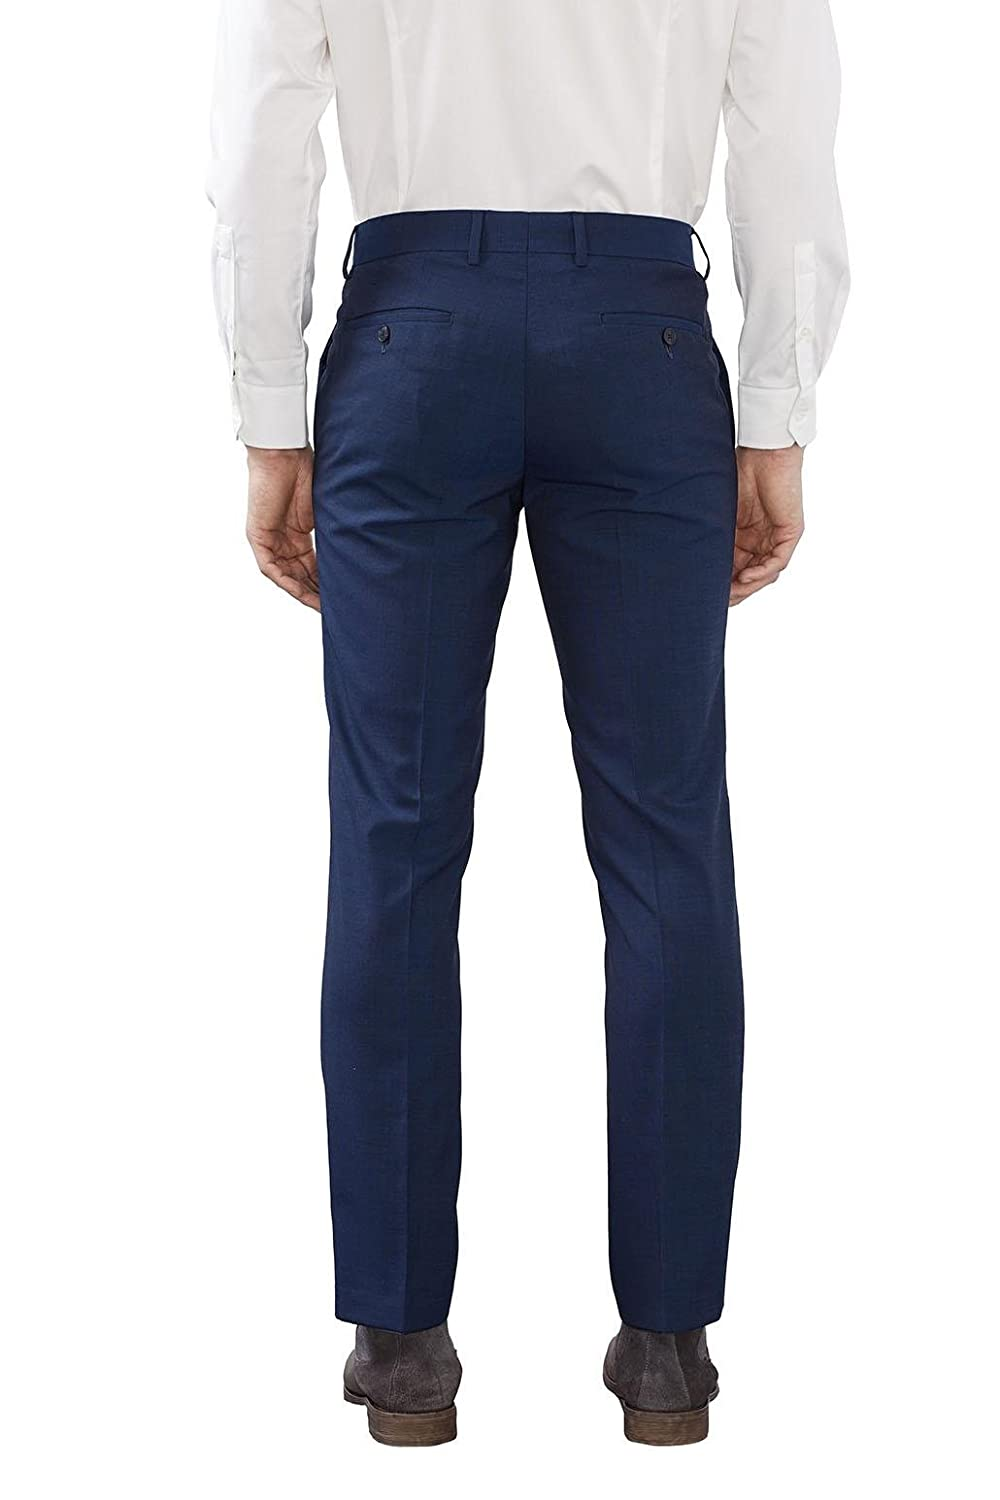 ESPRIT Collection Pantaloni Uomo 997EO2B802